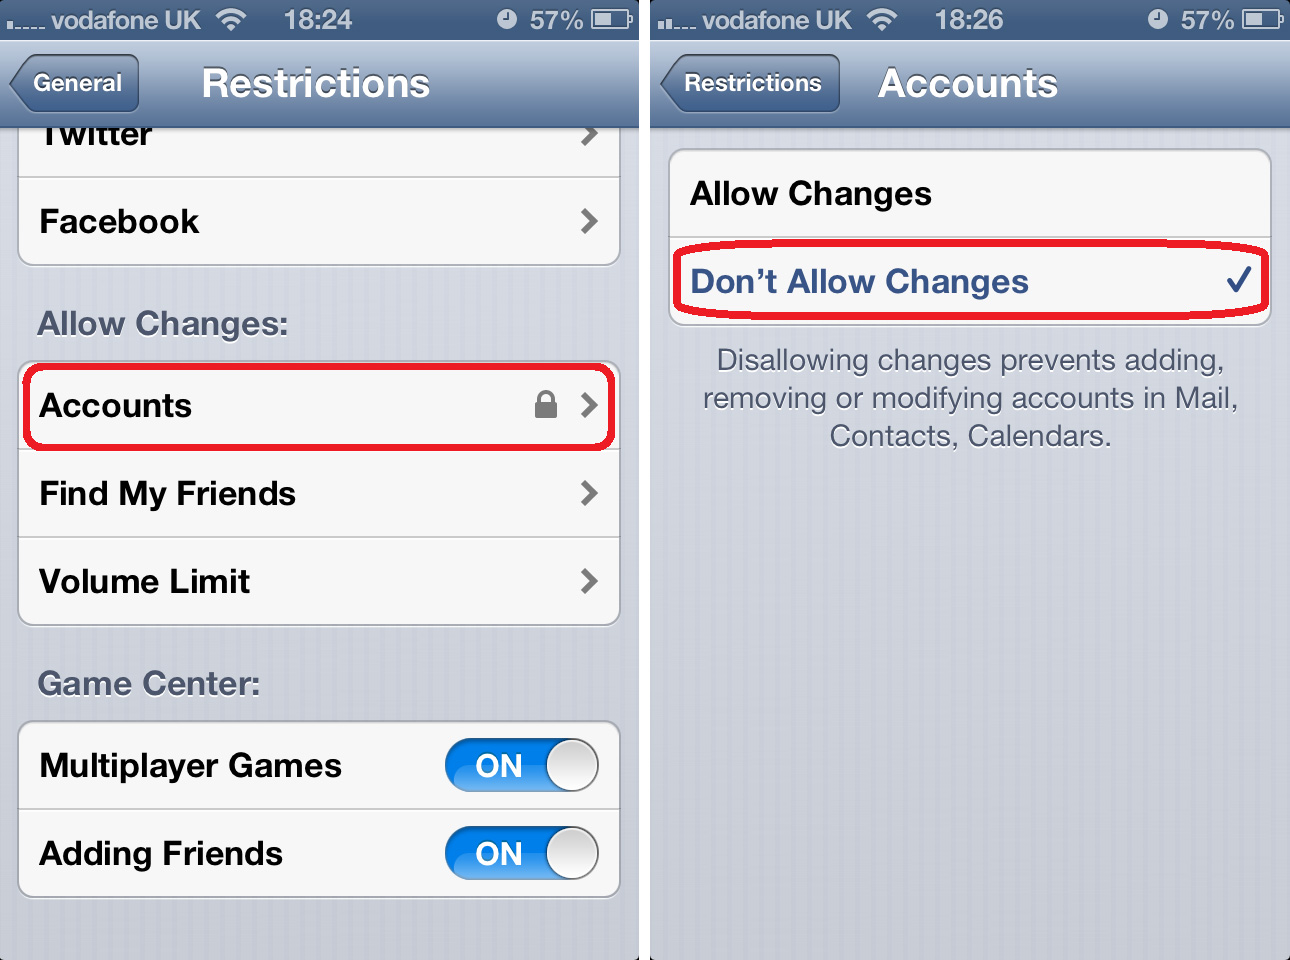 Disable Accounts Changes